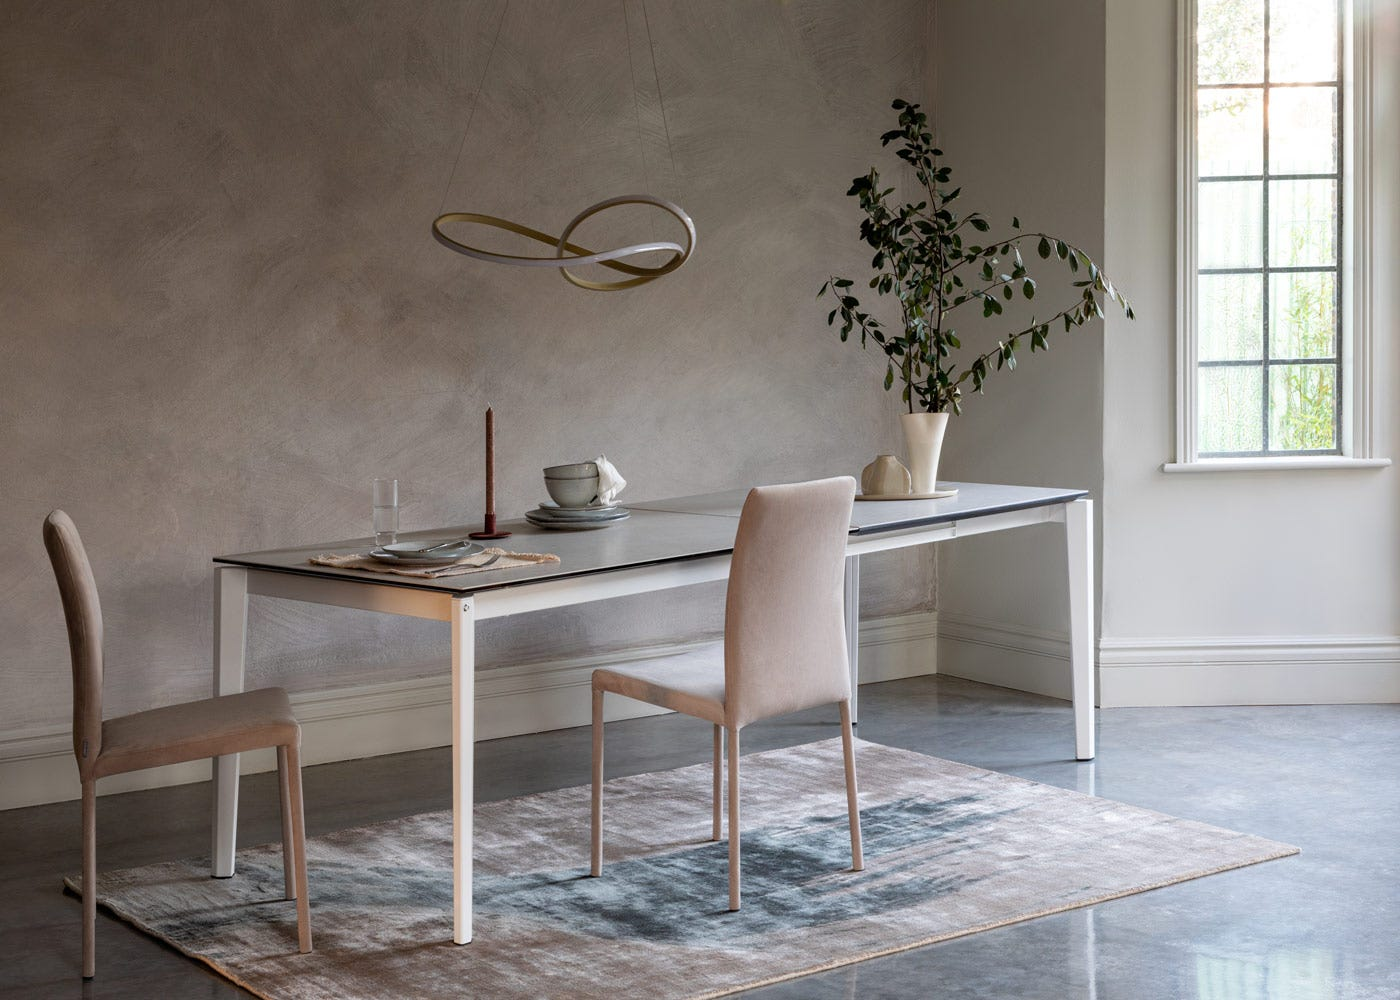 As shown: The Rocca extended dining table in Salt White fully extended.